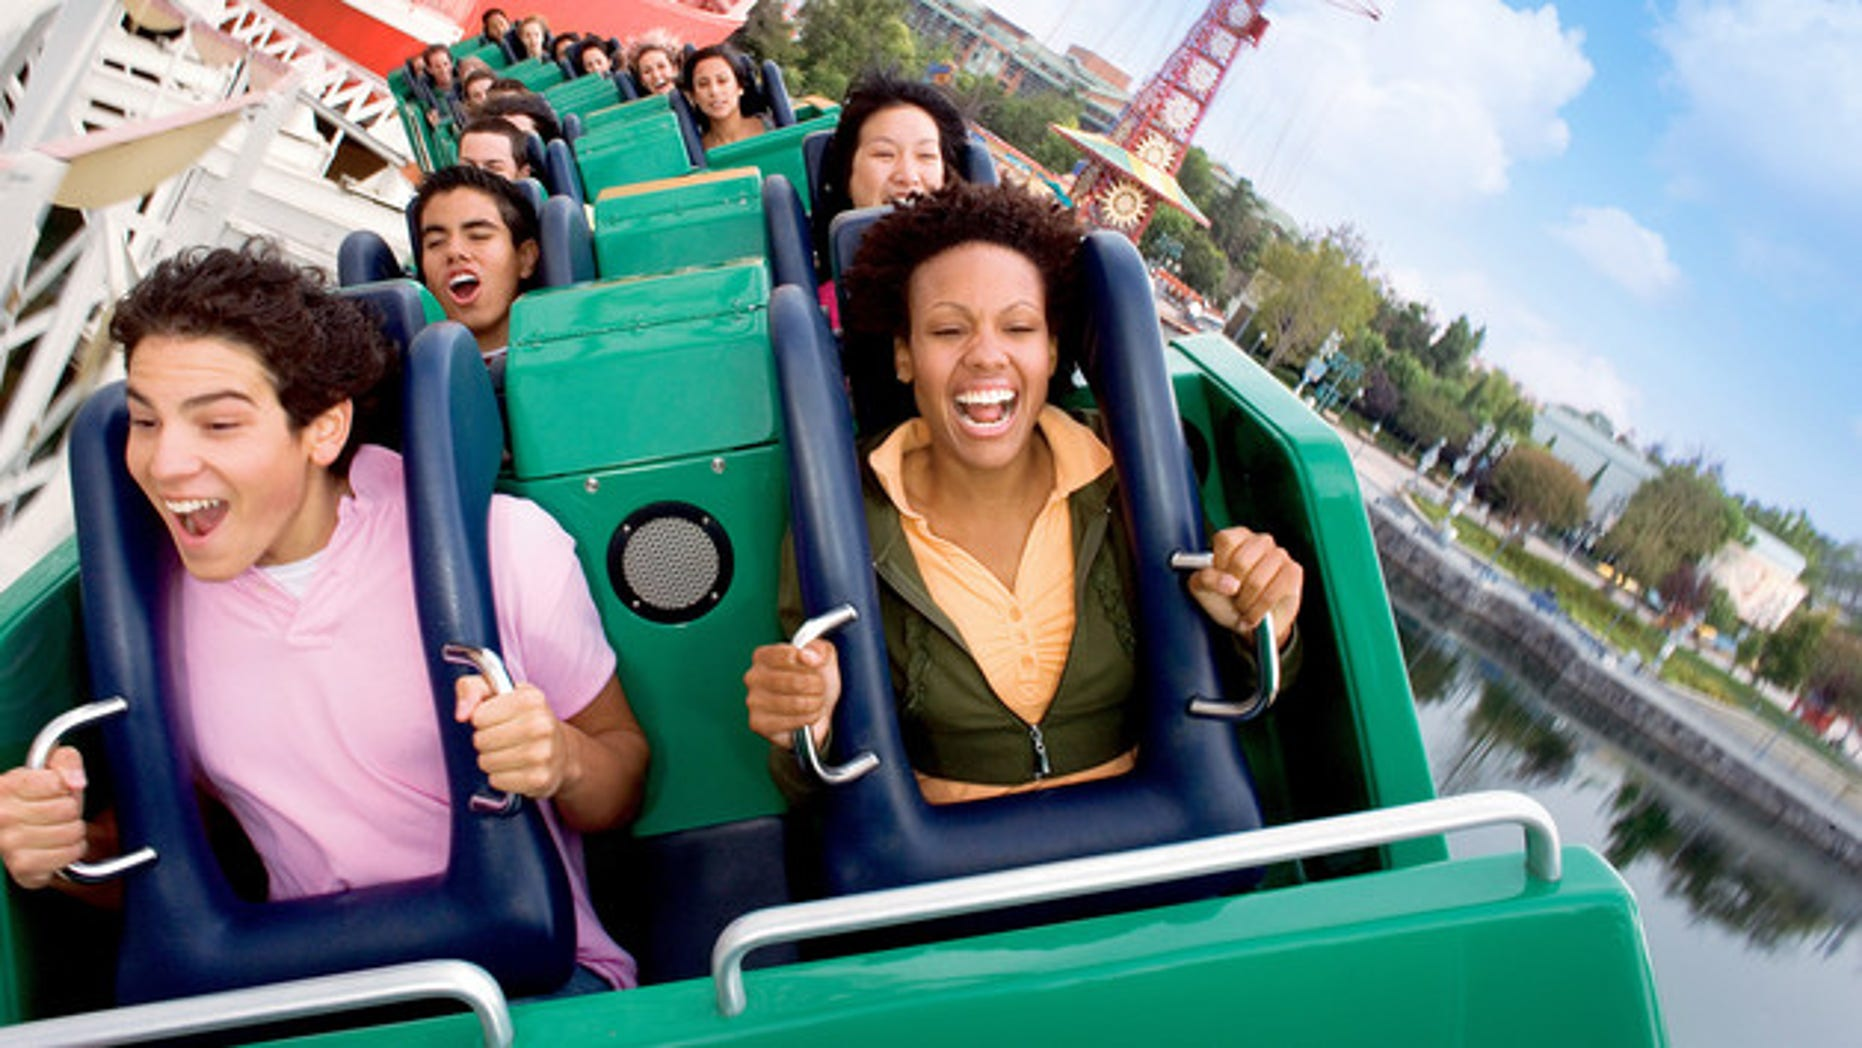 California Screamin' is one of the park's fastest rides.